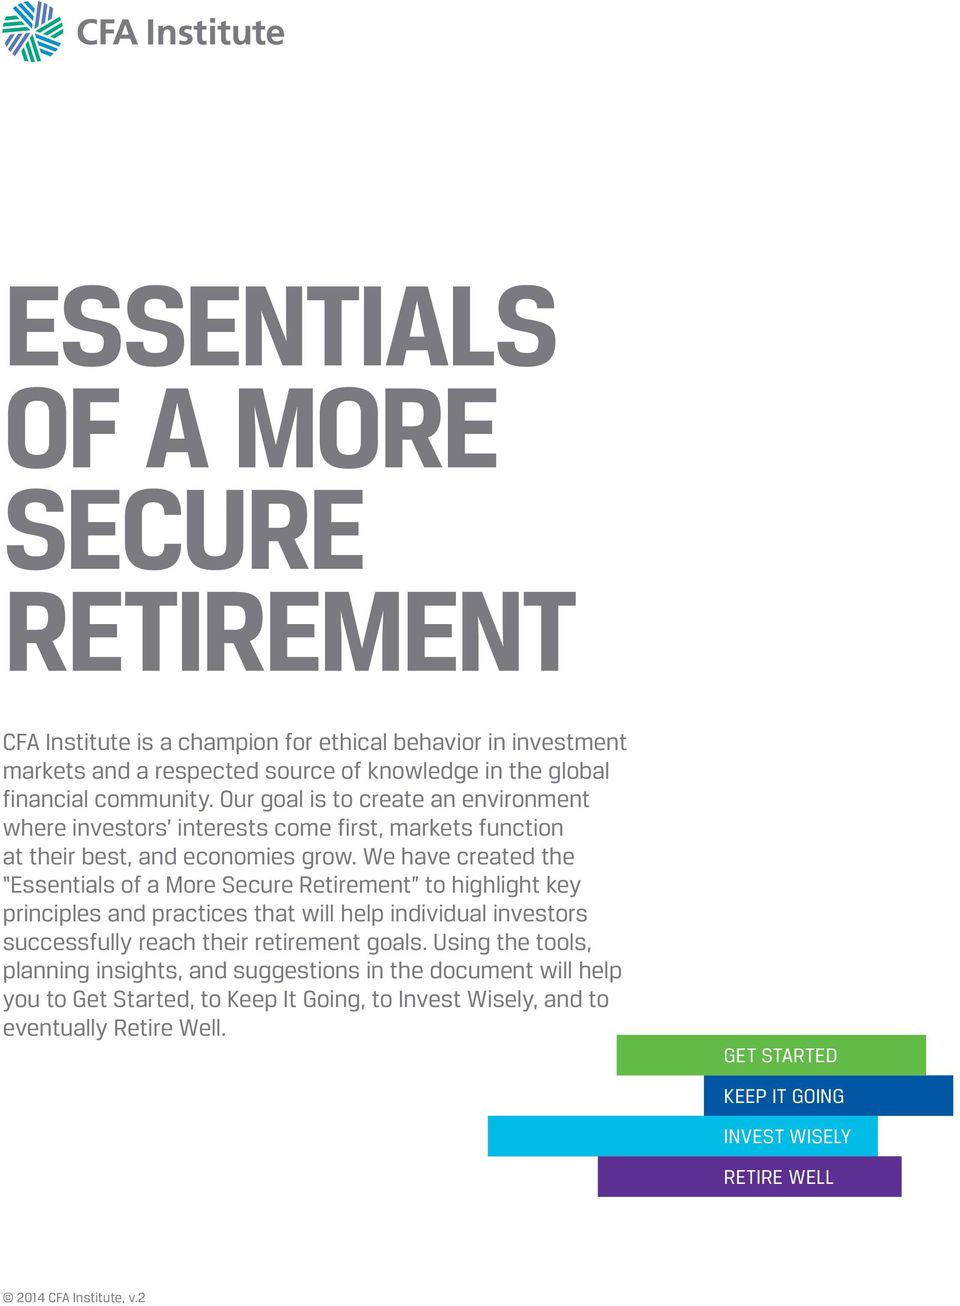 We have created the Essentials of a More Secure Retirement to highlight key principles and practices that will help individual investors successfully reach their retirement goals.